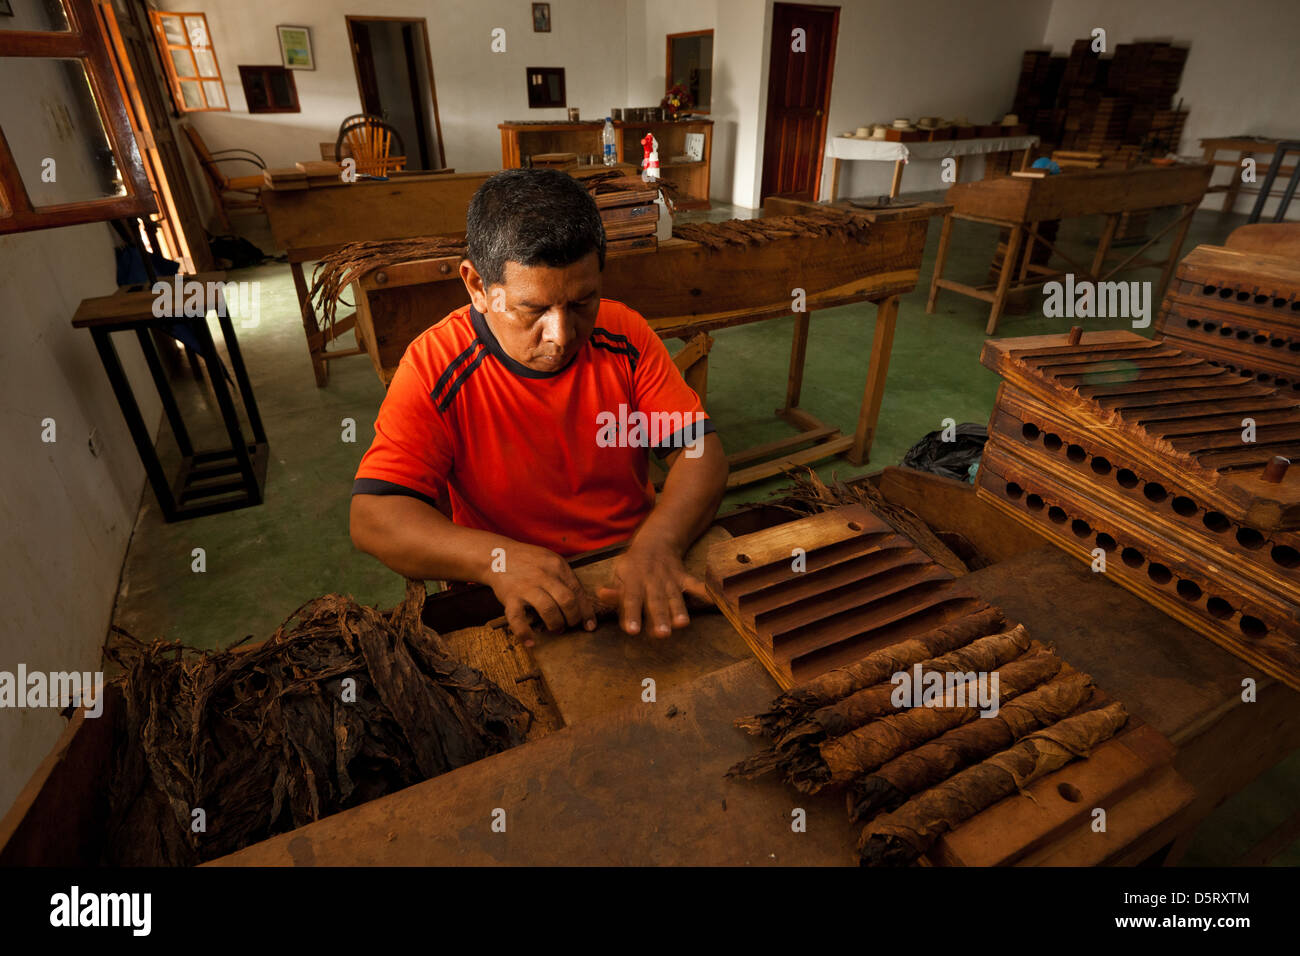 Cigars in the making at Joyas de Panama cigar factory, La Pintada village, Cocle province, Republic of Panama. - Stock Image